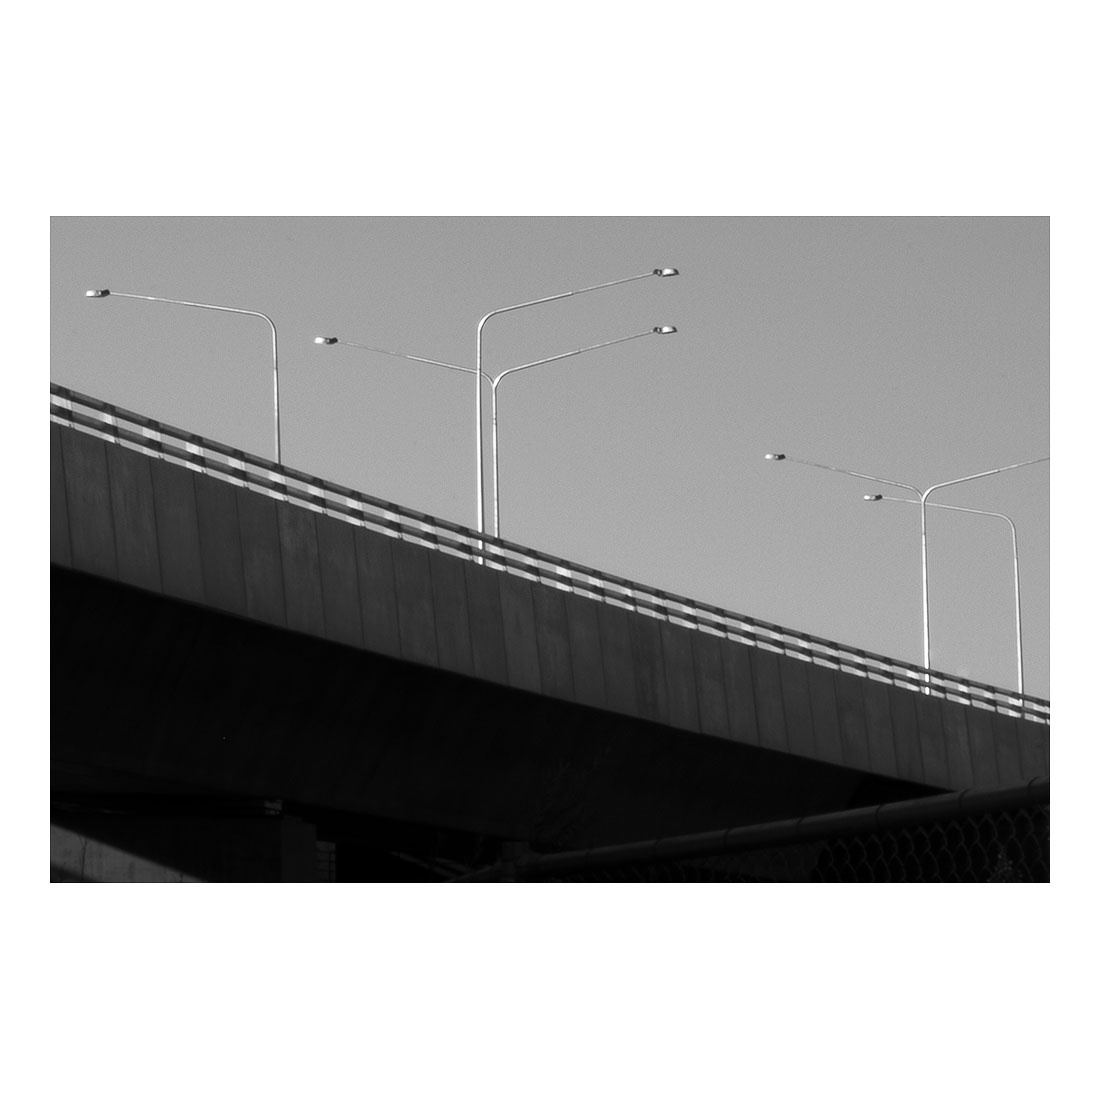 Bridge and Street Lights   (2017) Halftone print 91cm x 122cm dition of 1 + 1AP